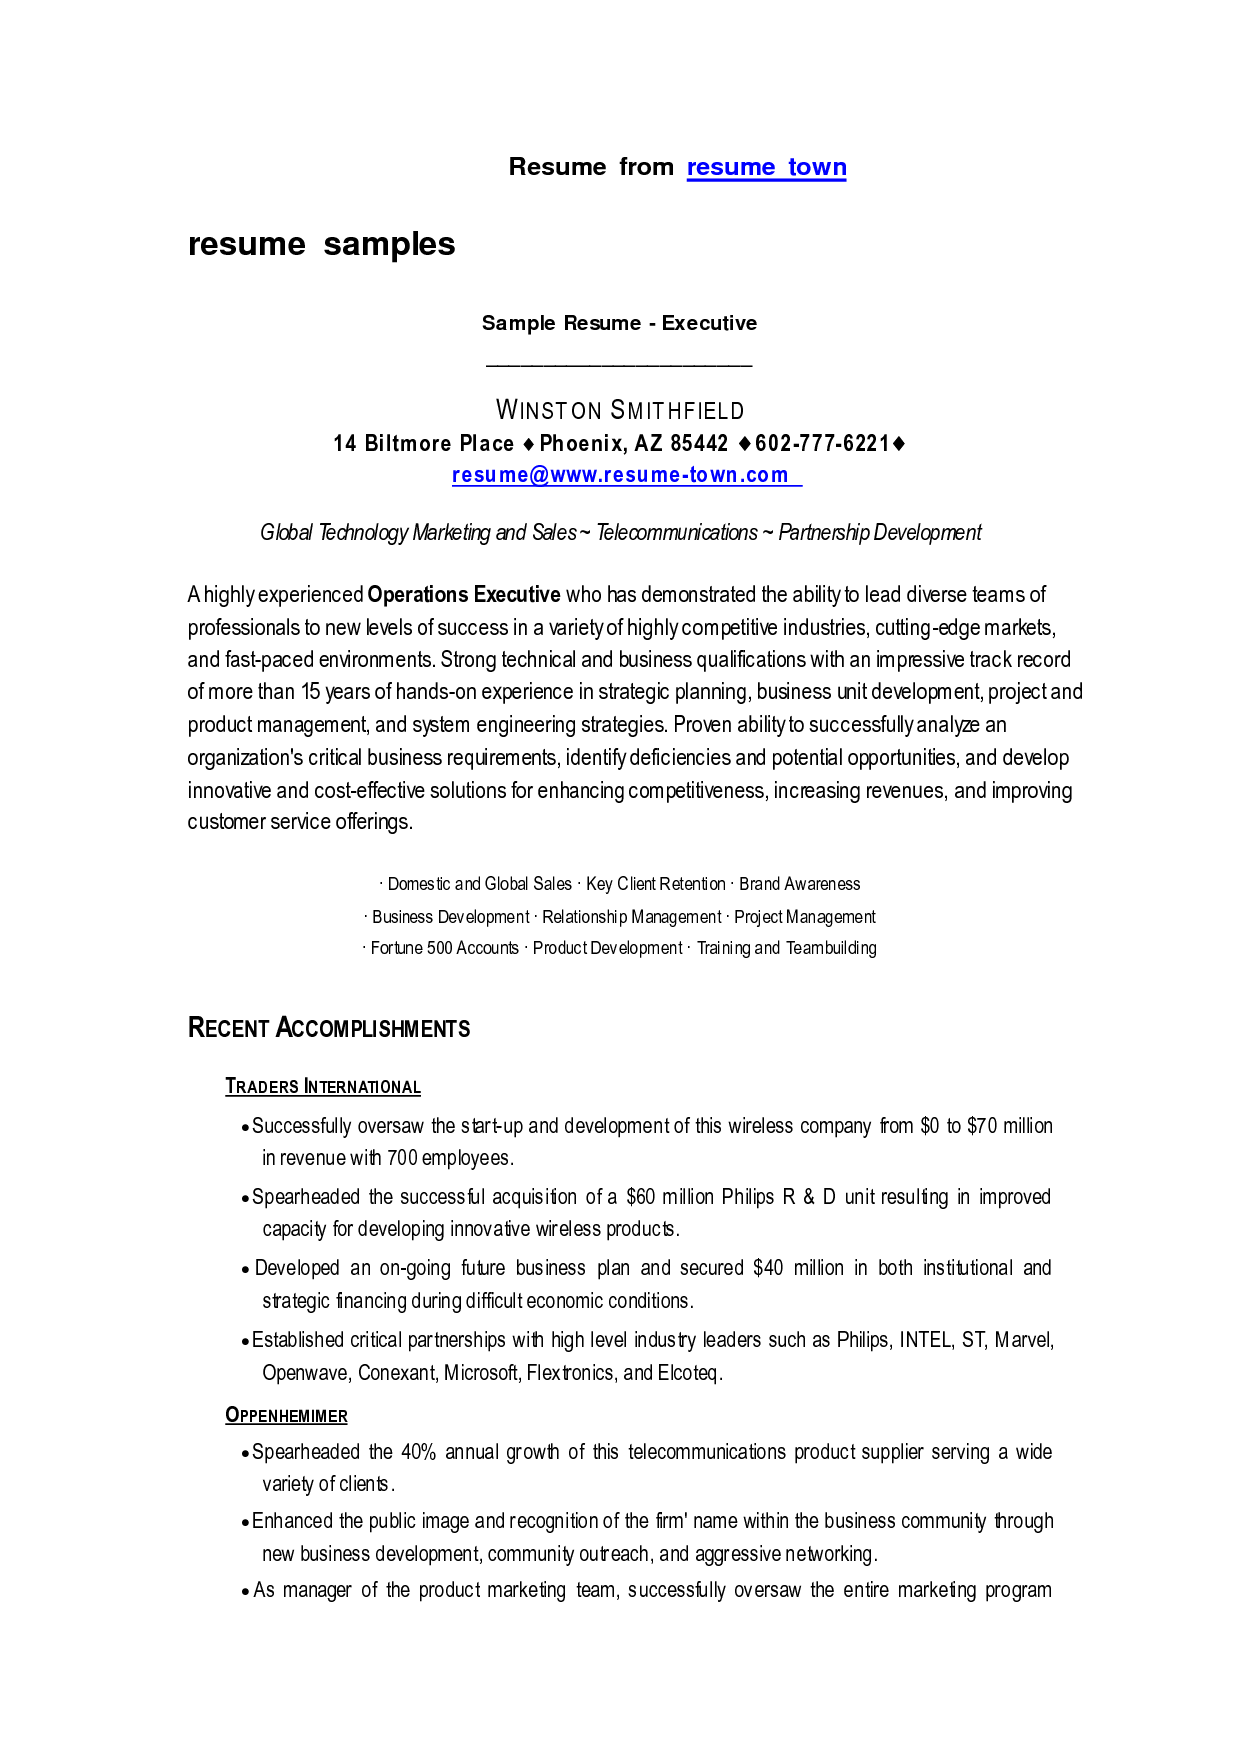 Pin By Resumejob On Resume Job Resume Resume Template